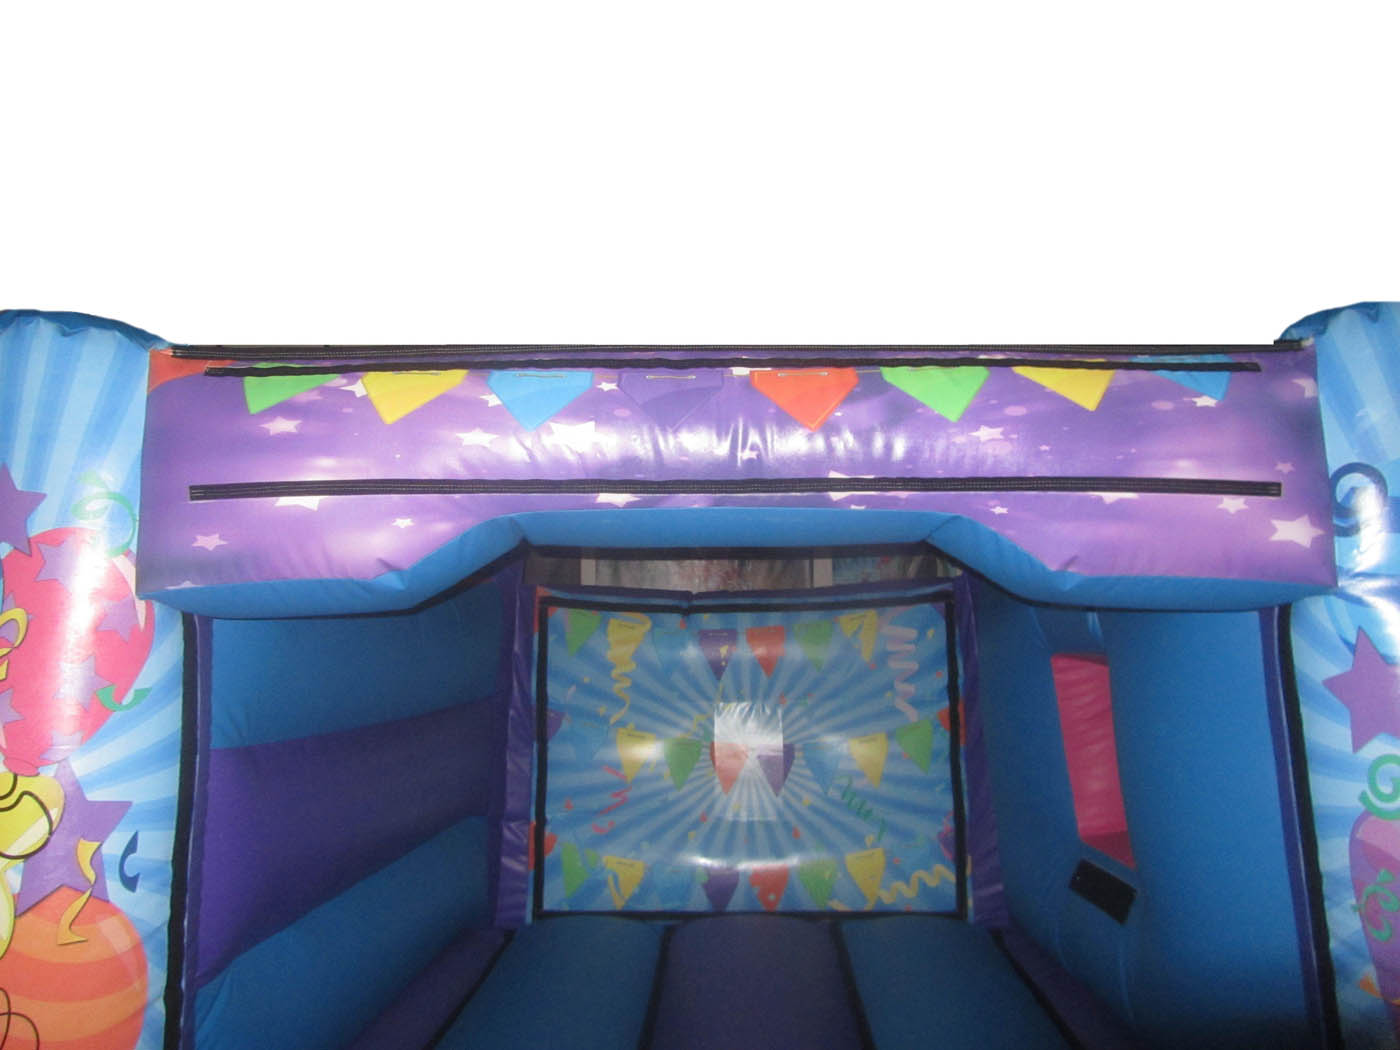 17x15-4post-combi-childrens-bouncy-castle-crossbar-compressor